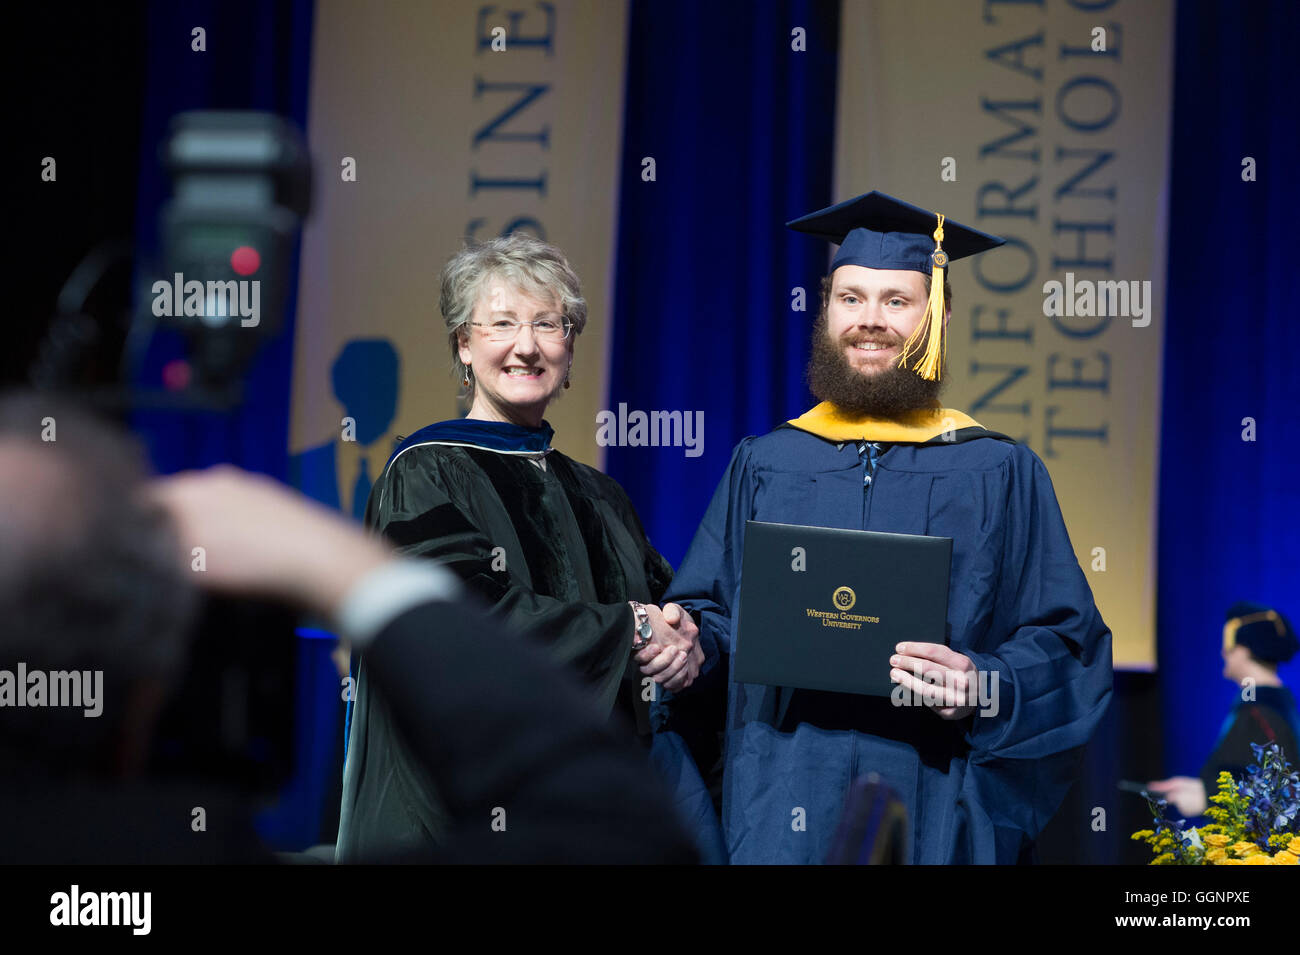 Graduation candidate in cap and gown receives diploma at Western Governors University commencement ceremony in Orlando, - Stock Image